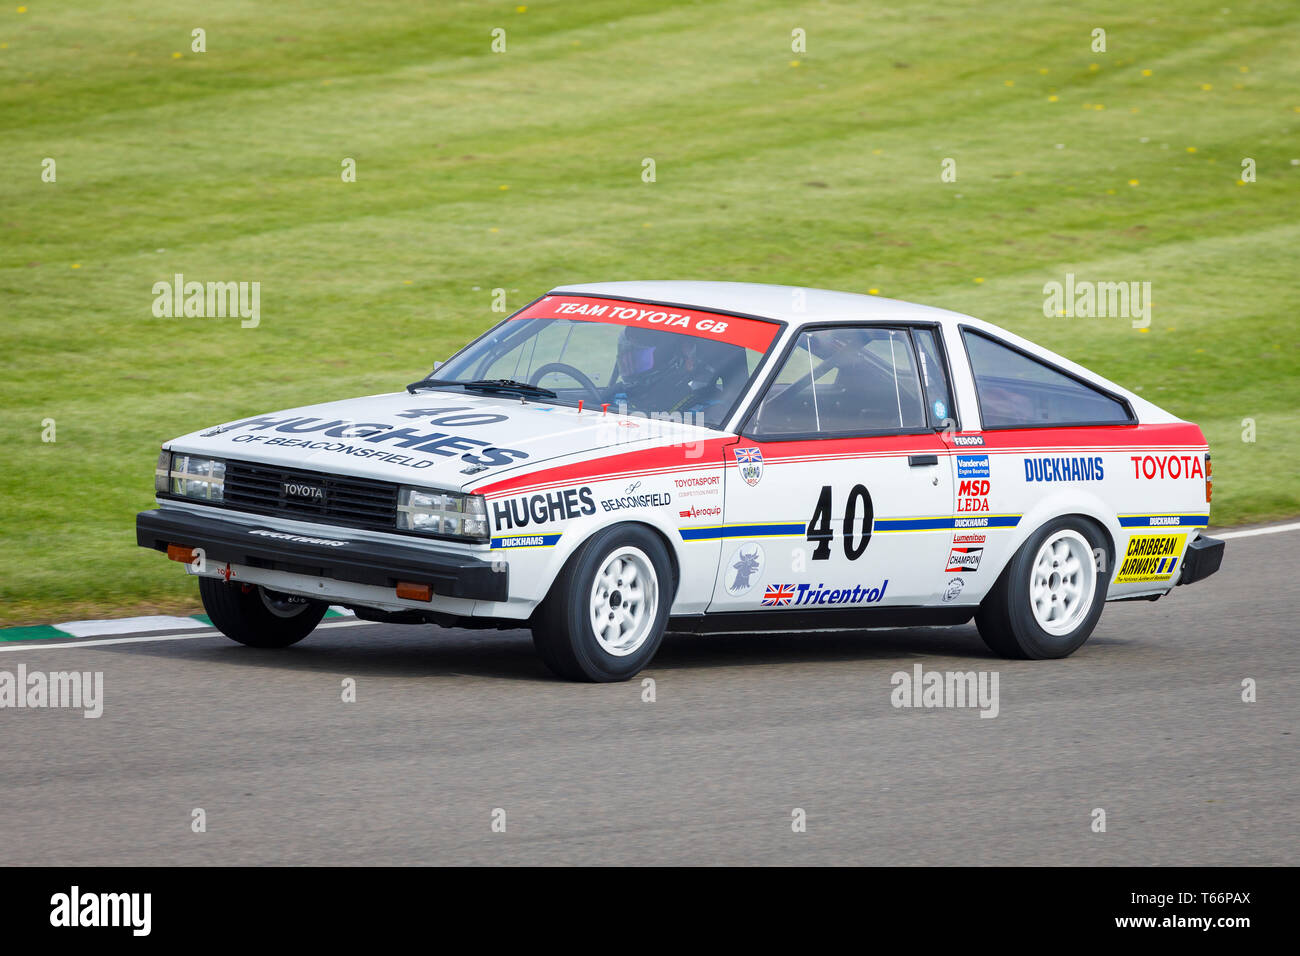 1980 Toyota Corolla 1600GT Coupe with driver David Green during the Gerry Marshall Trophy race at the 77th Goodwood GRRC Members Meeting, Sussex, UK. - Stock Image